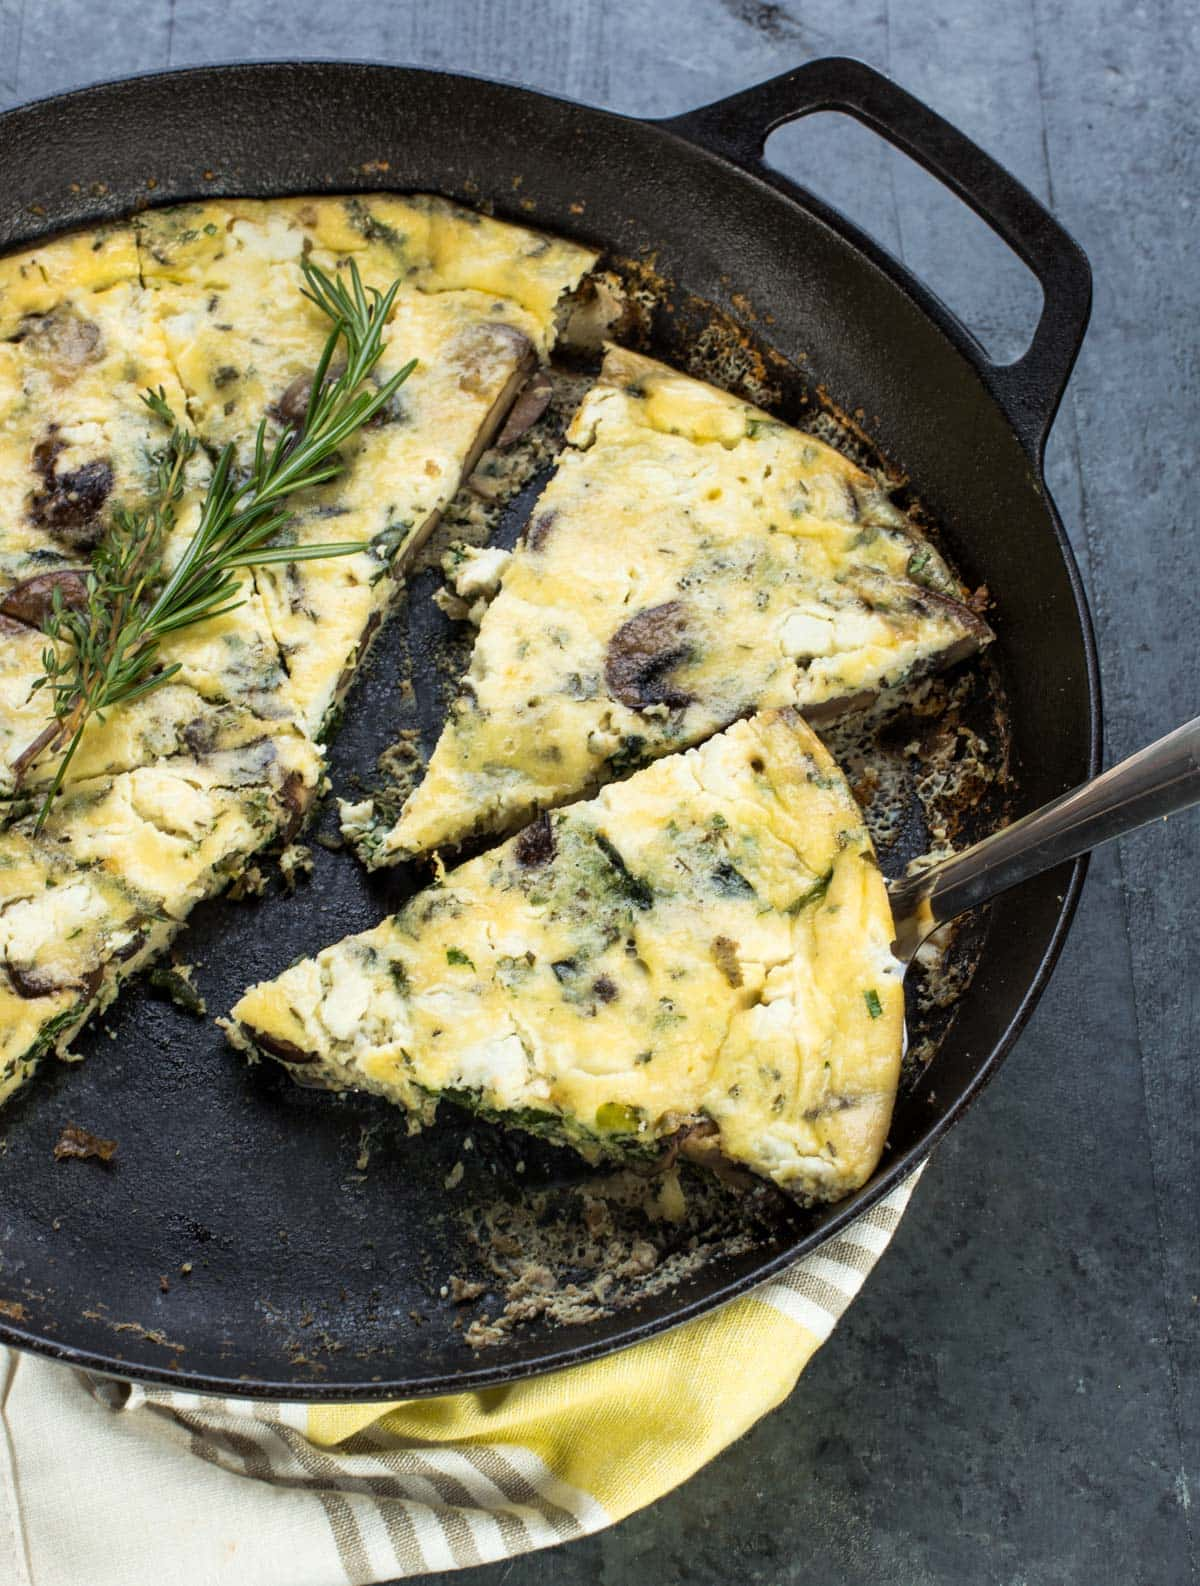 This savory Mushroom and Goat Cheese Frittata recipe is one of the tastiest ways to serve eggs to a group of people.